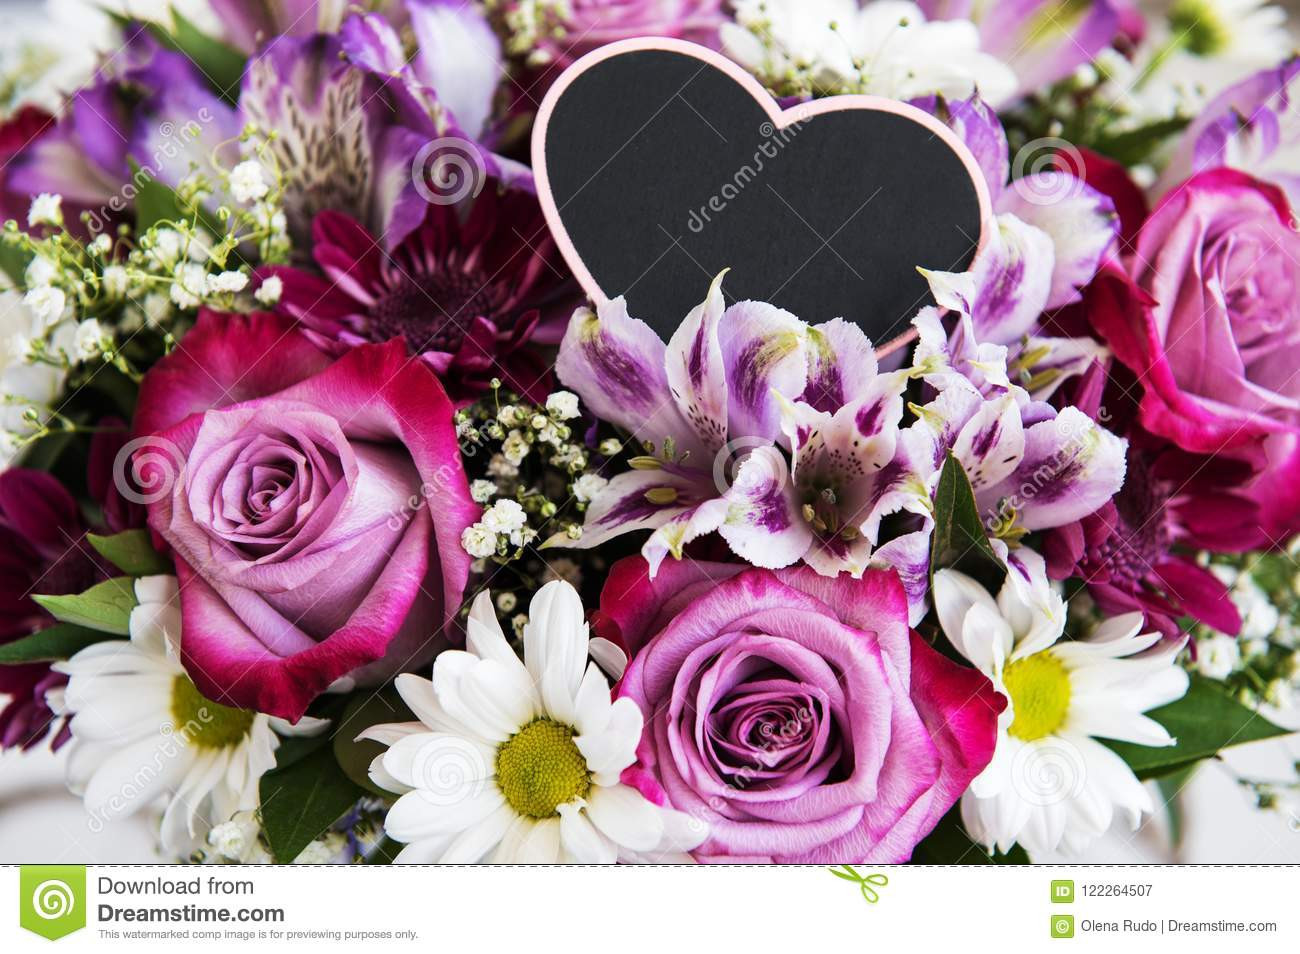 heart shaped glass vase of bouquet of pink flowers stock image image of message 122264507 within bouquet of pink flowers roses and daisies and heart shaped blackboard for message